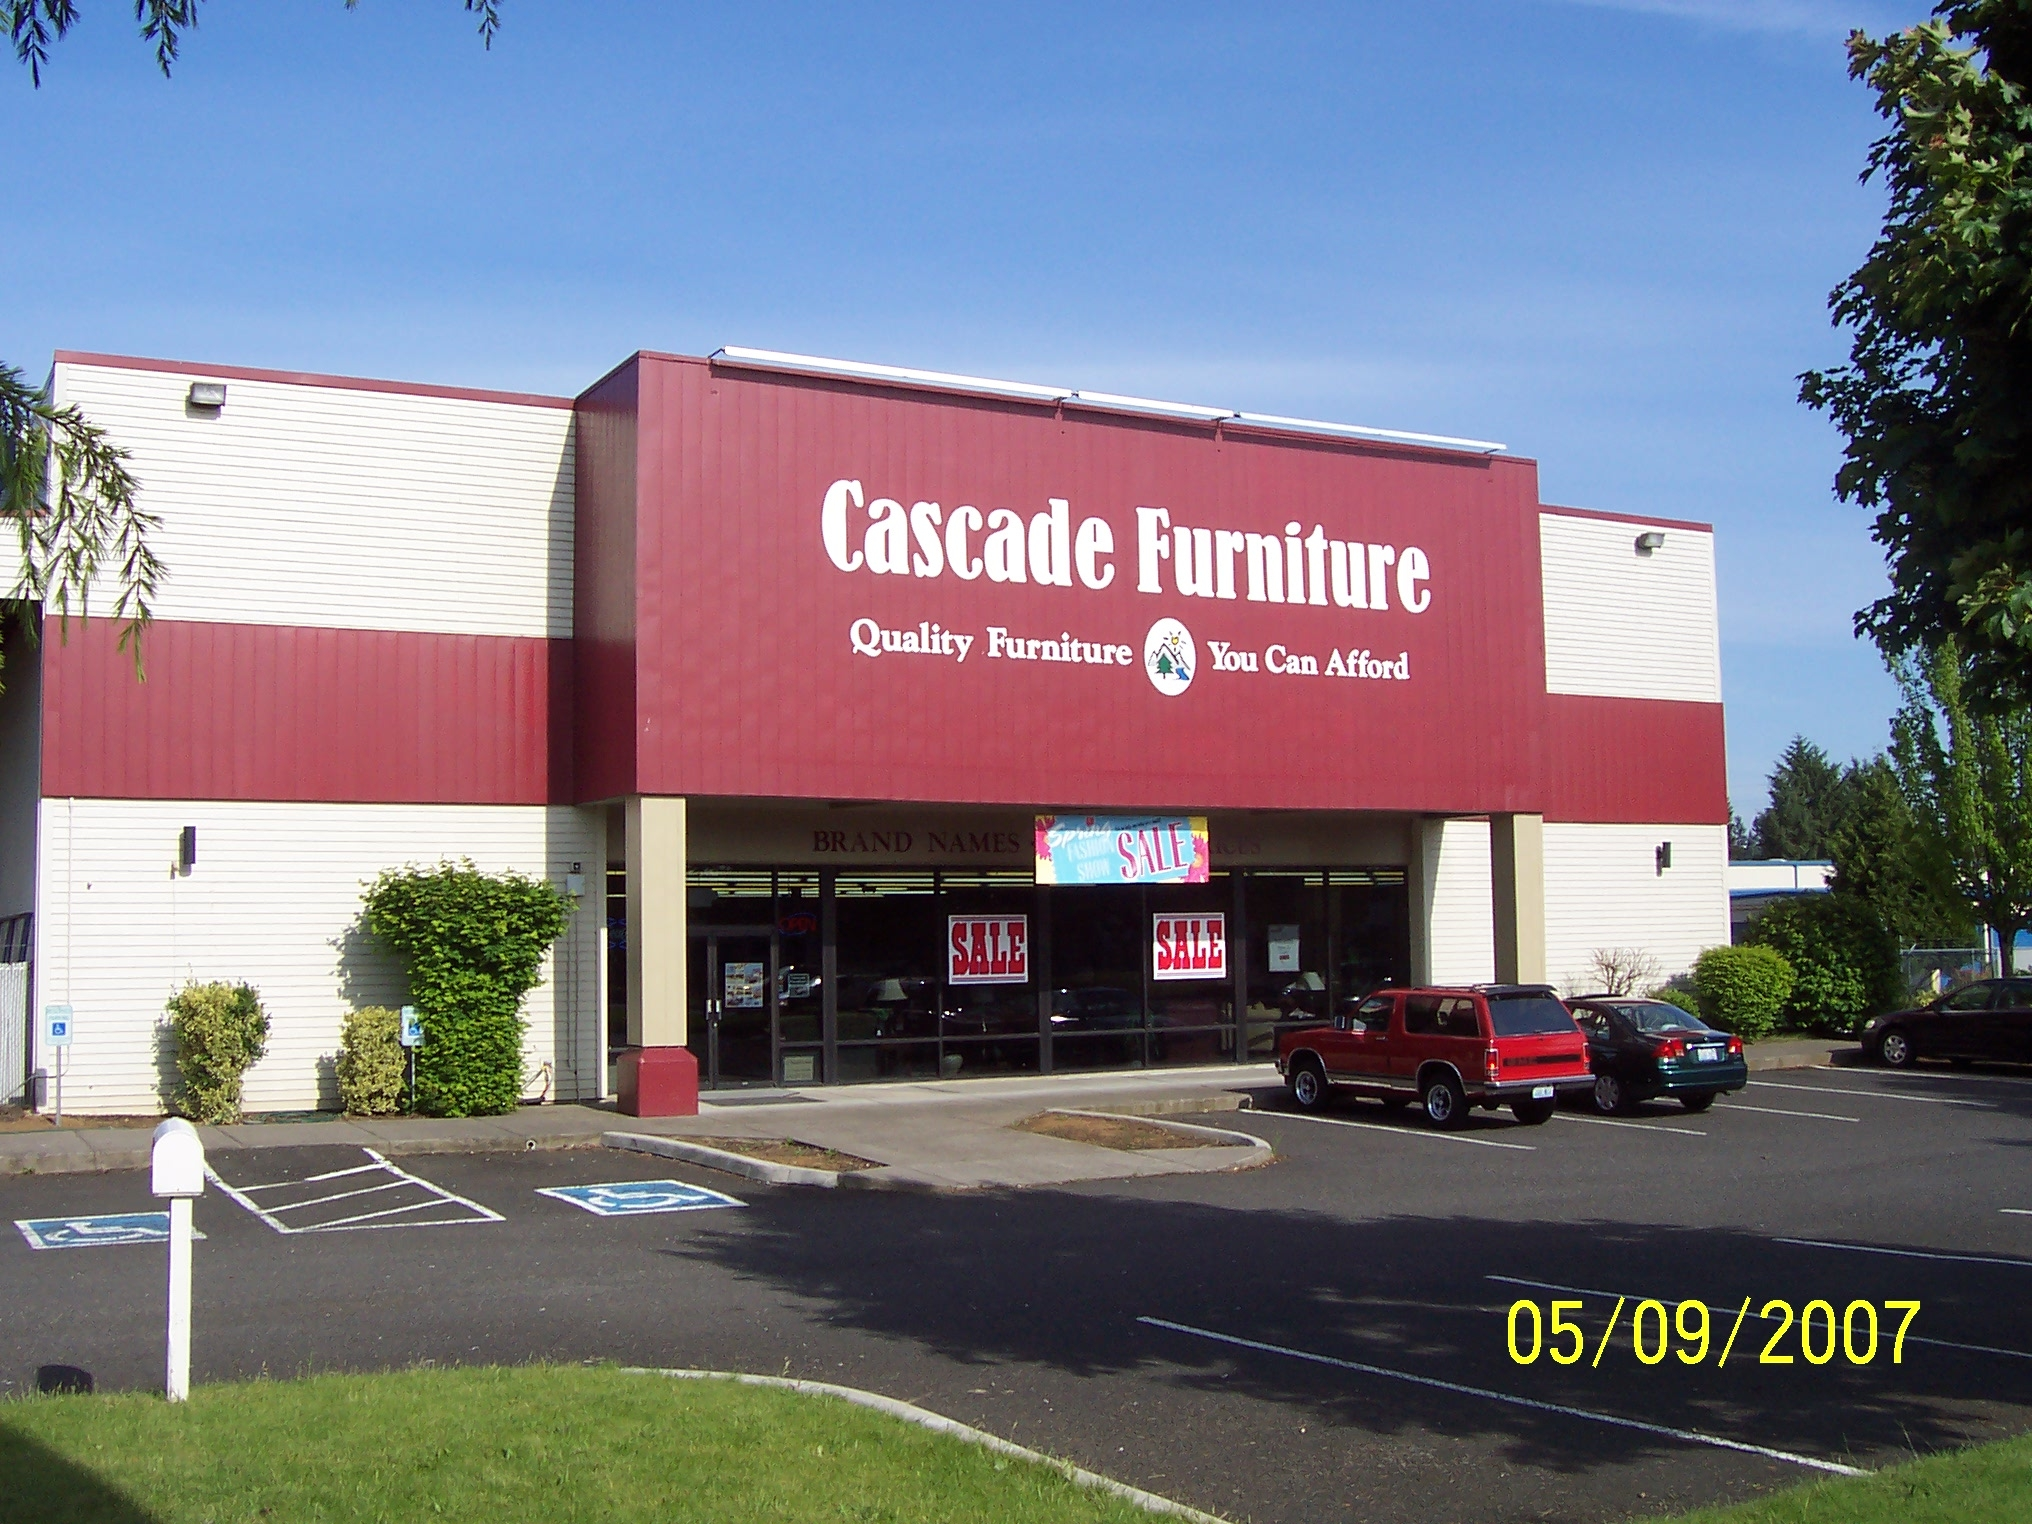 Wholesale Furniture Brokers Signs Cascade Furniture to